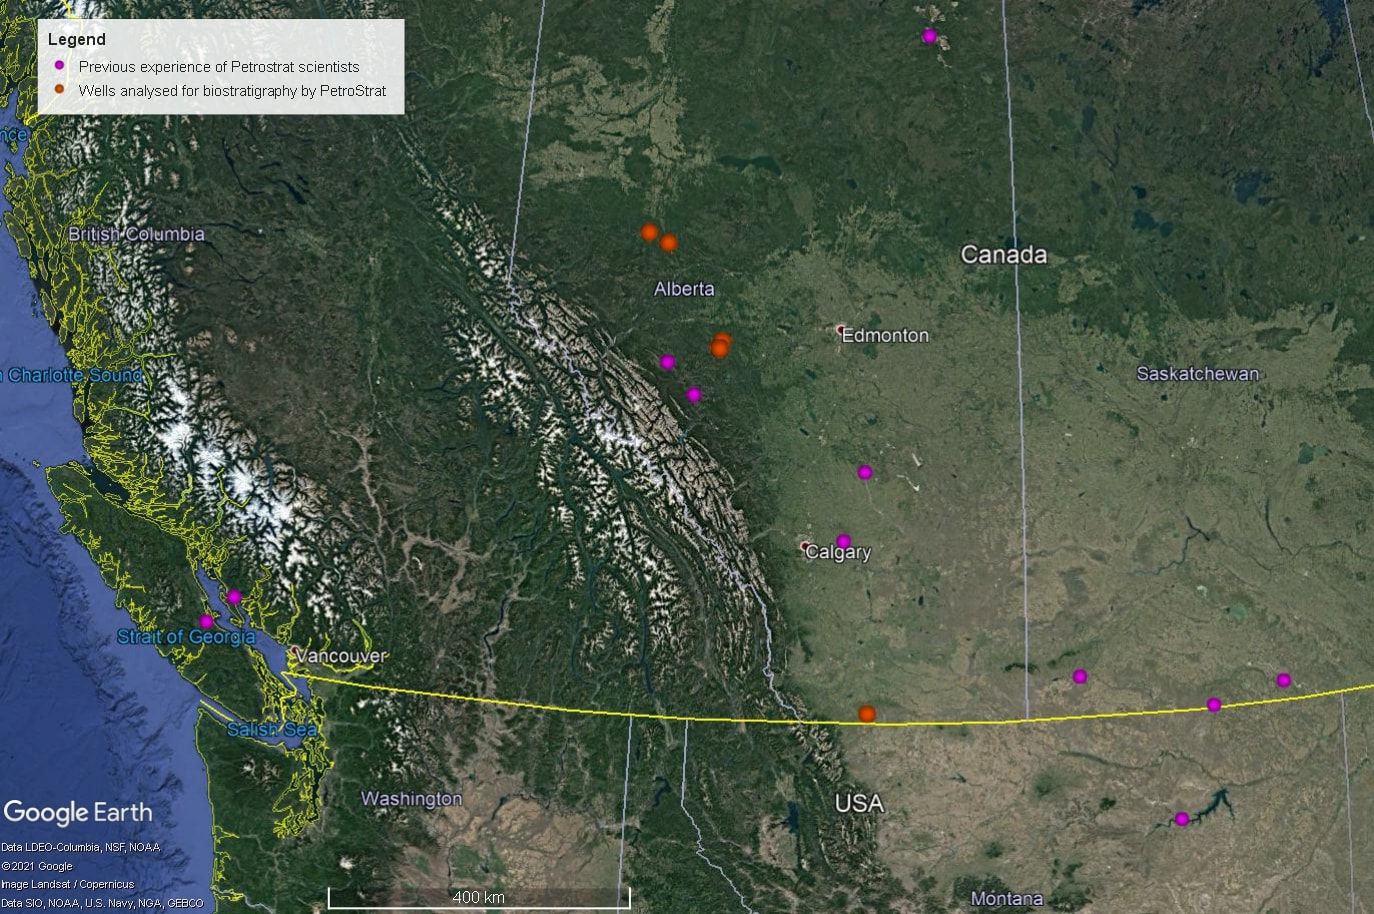 Petrostrat North America Global Biostratigraphy Experience Well Map WesternCanada